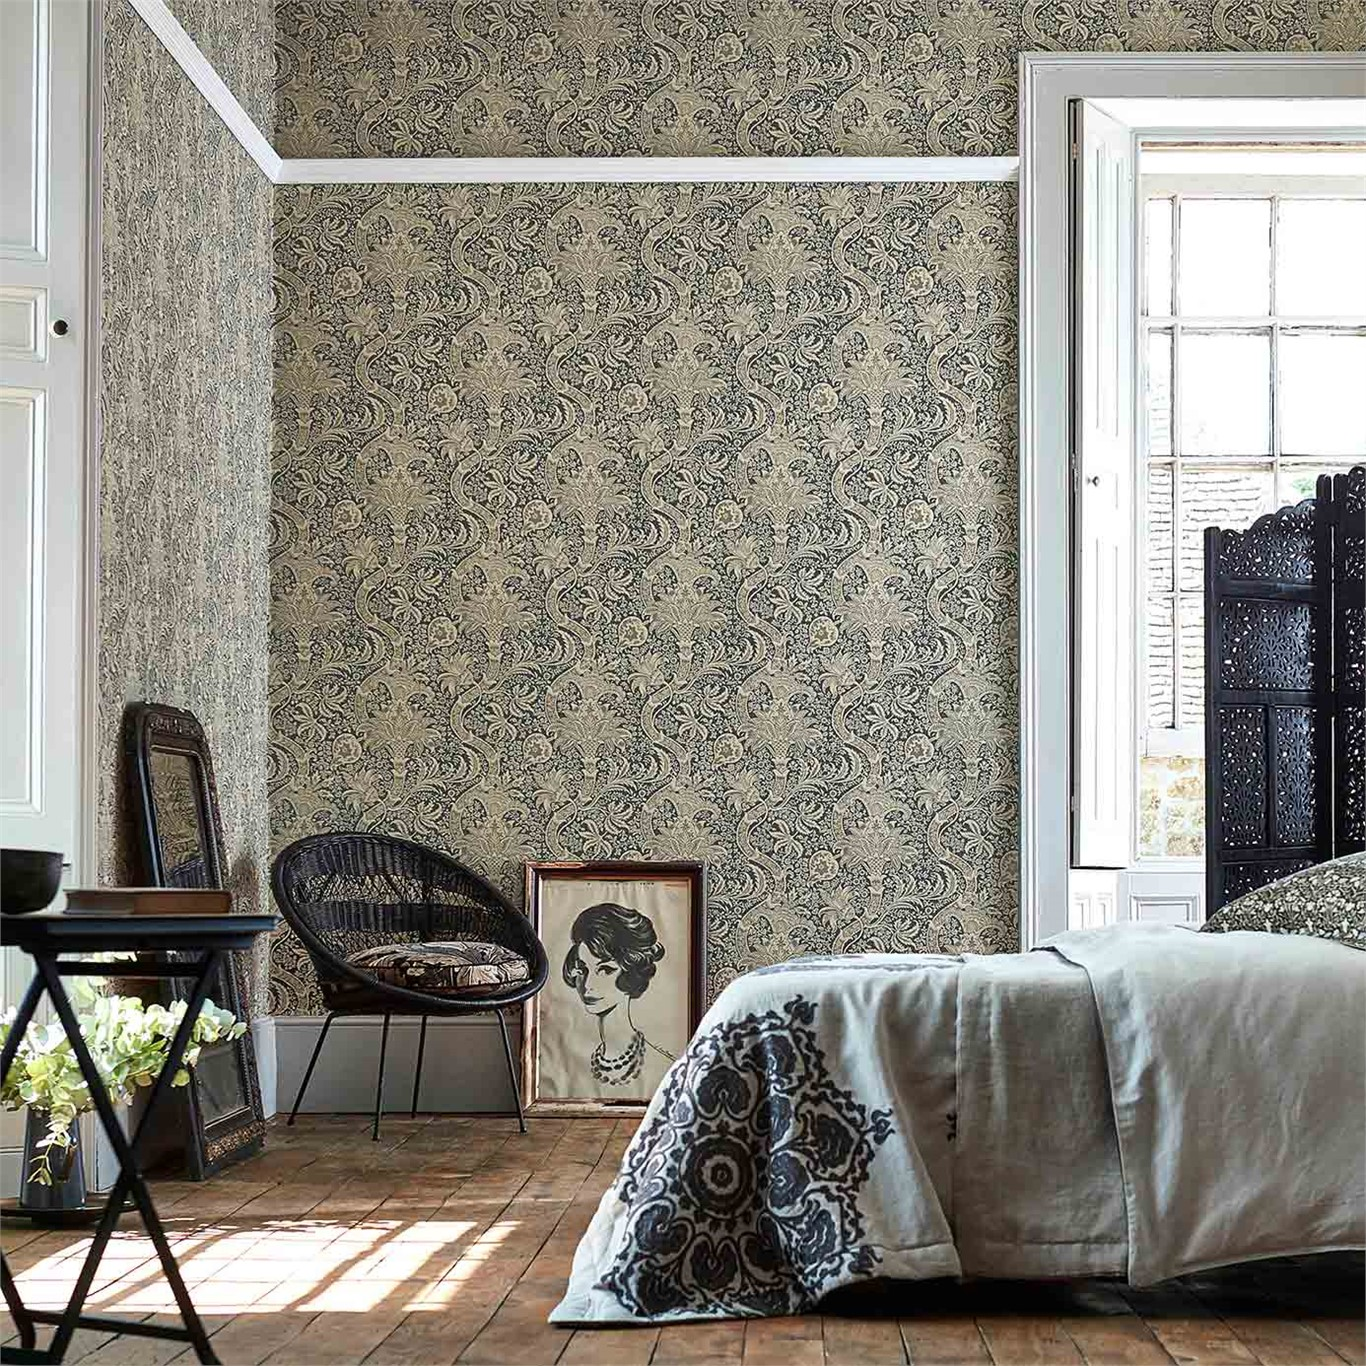 1-Morris-Indian-bedroom-blue-damask-style-library